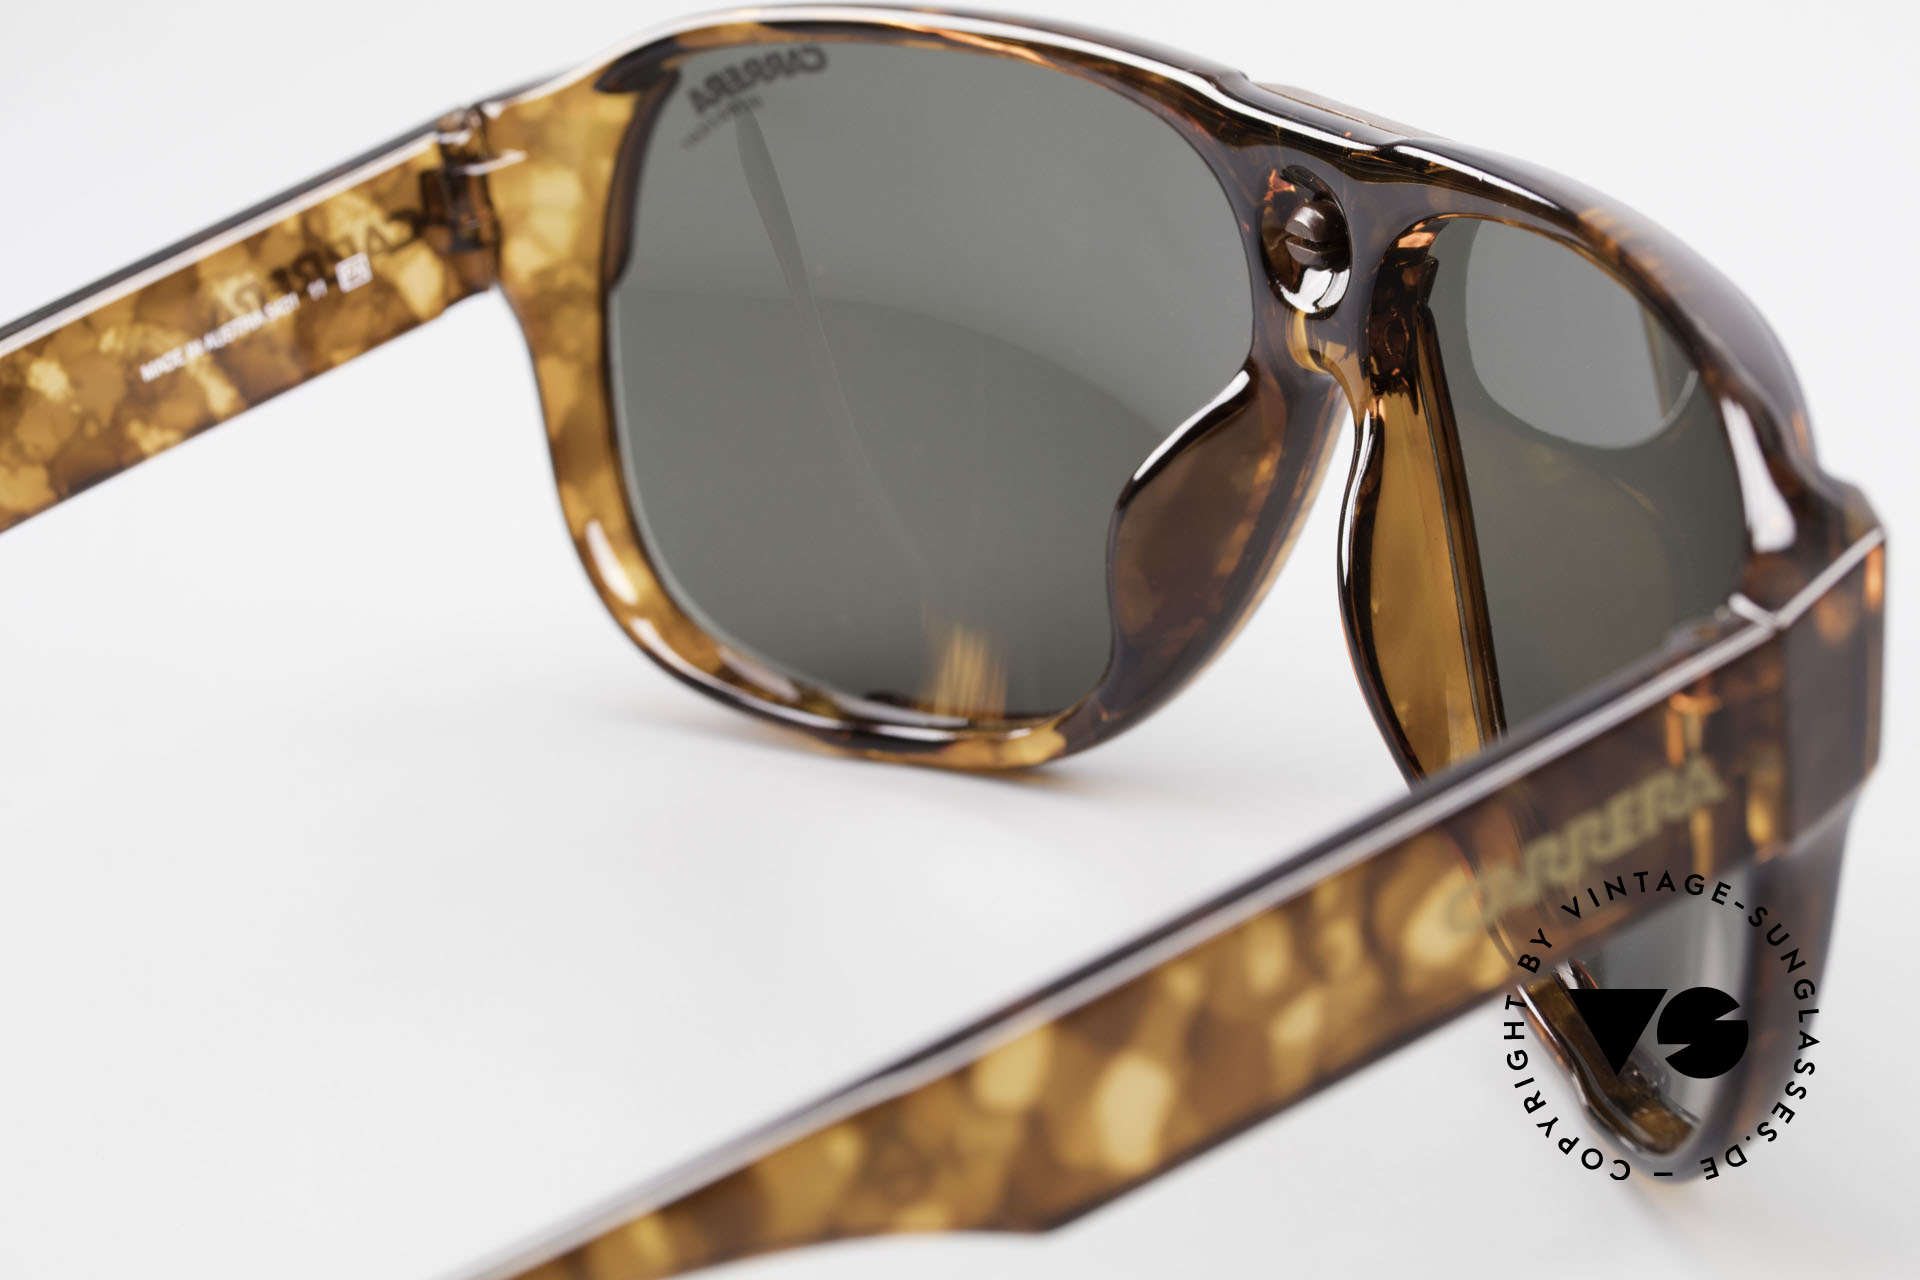 Carrera 5431 80's Alpine Changer Sunglasses, new old stock (like all our 80's Carrera sunnies), Made for Men